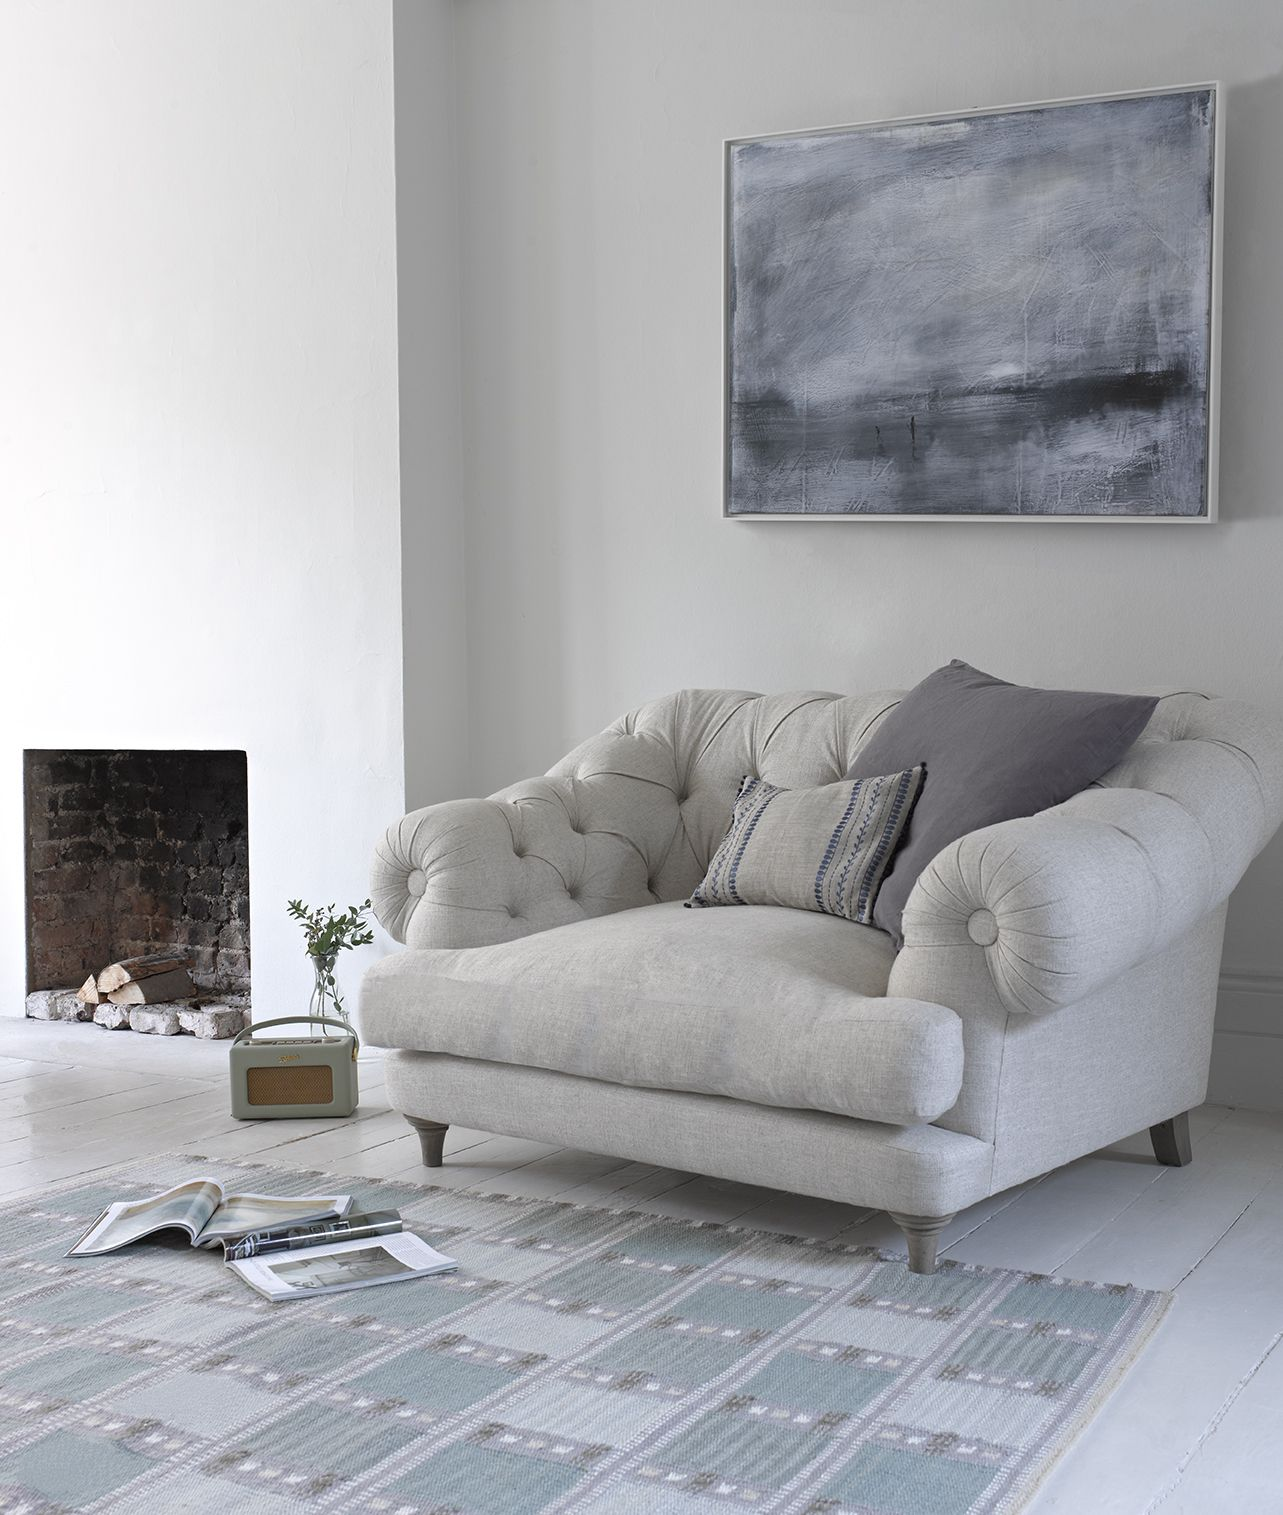 Large Chairs For Living Room Hanging Lights New Launch Bathroom Range From Loaf House Ideas Bagsie Love Seat Is Priced 1 295 Bergen Rug Comfy Reading Chair